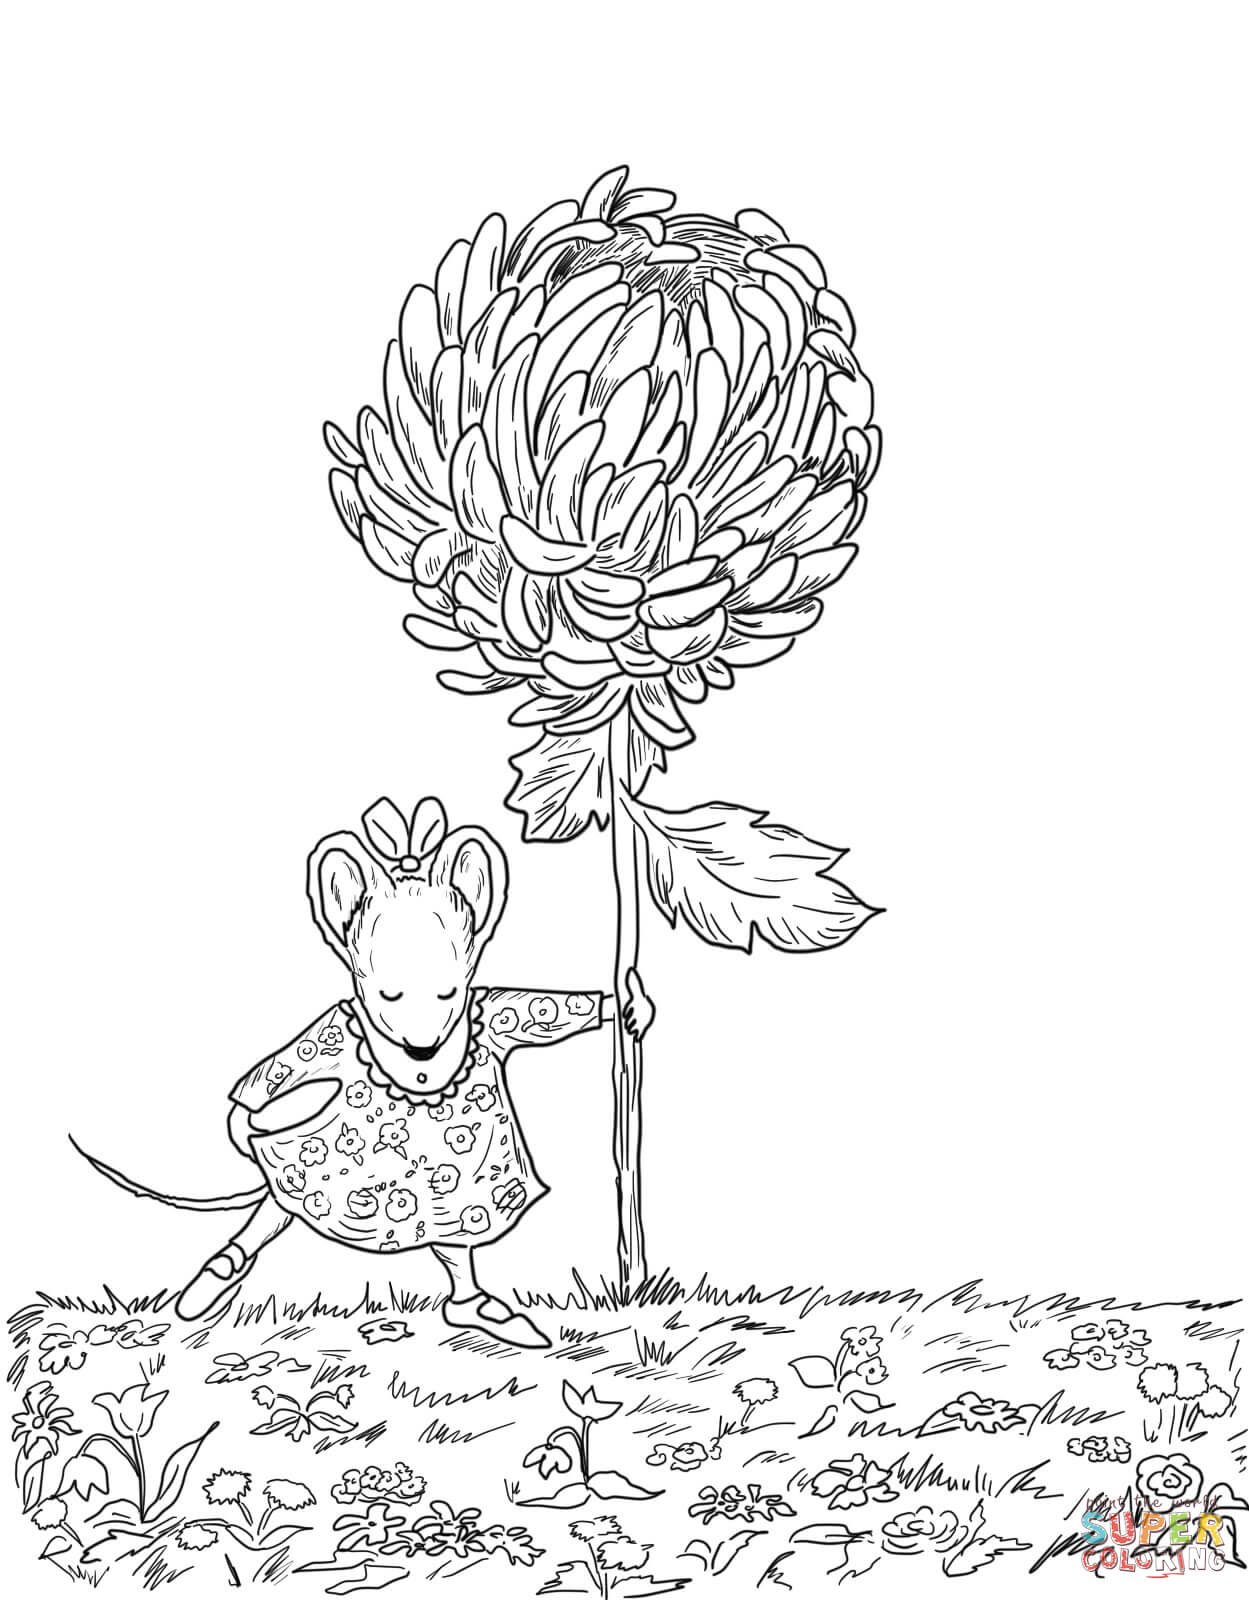 Chrysanthemum coloring pages.